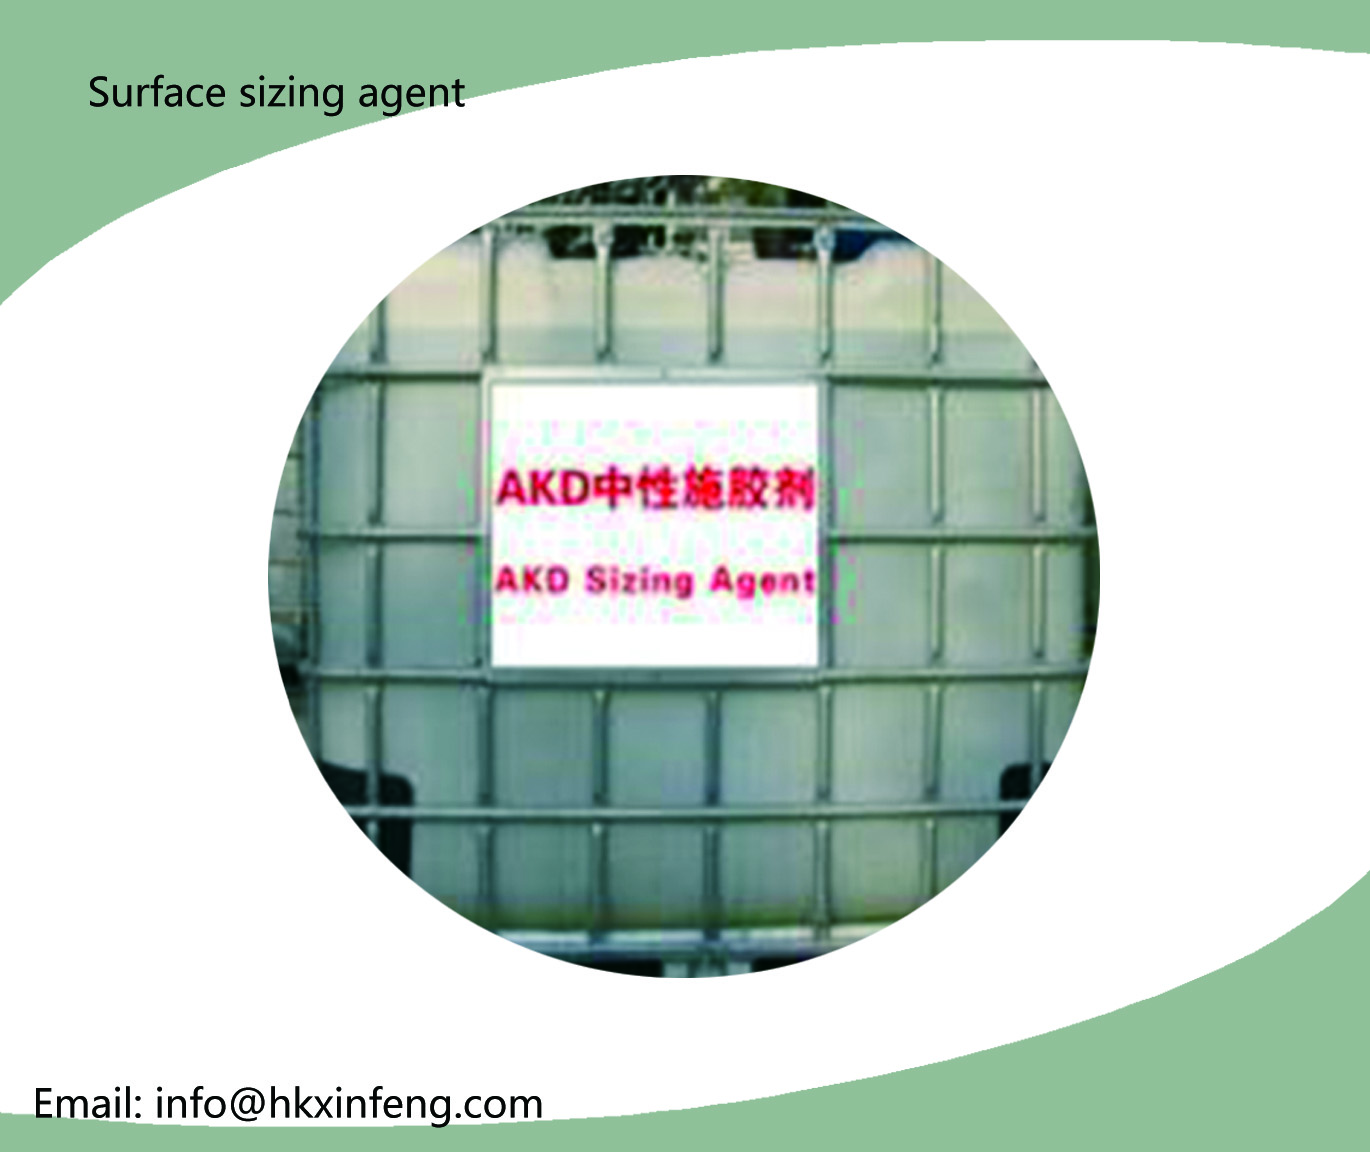 Surface sizing agent